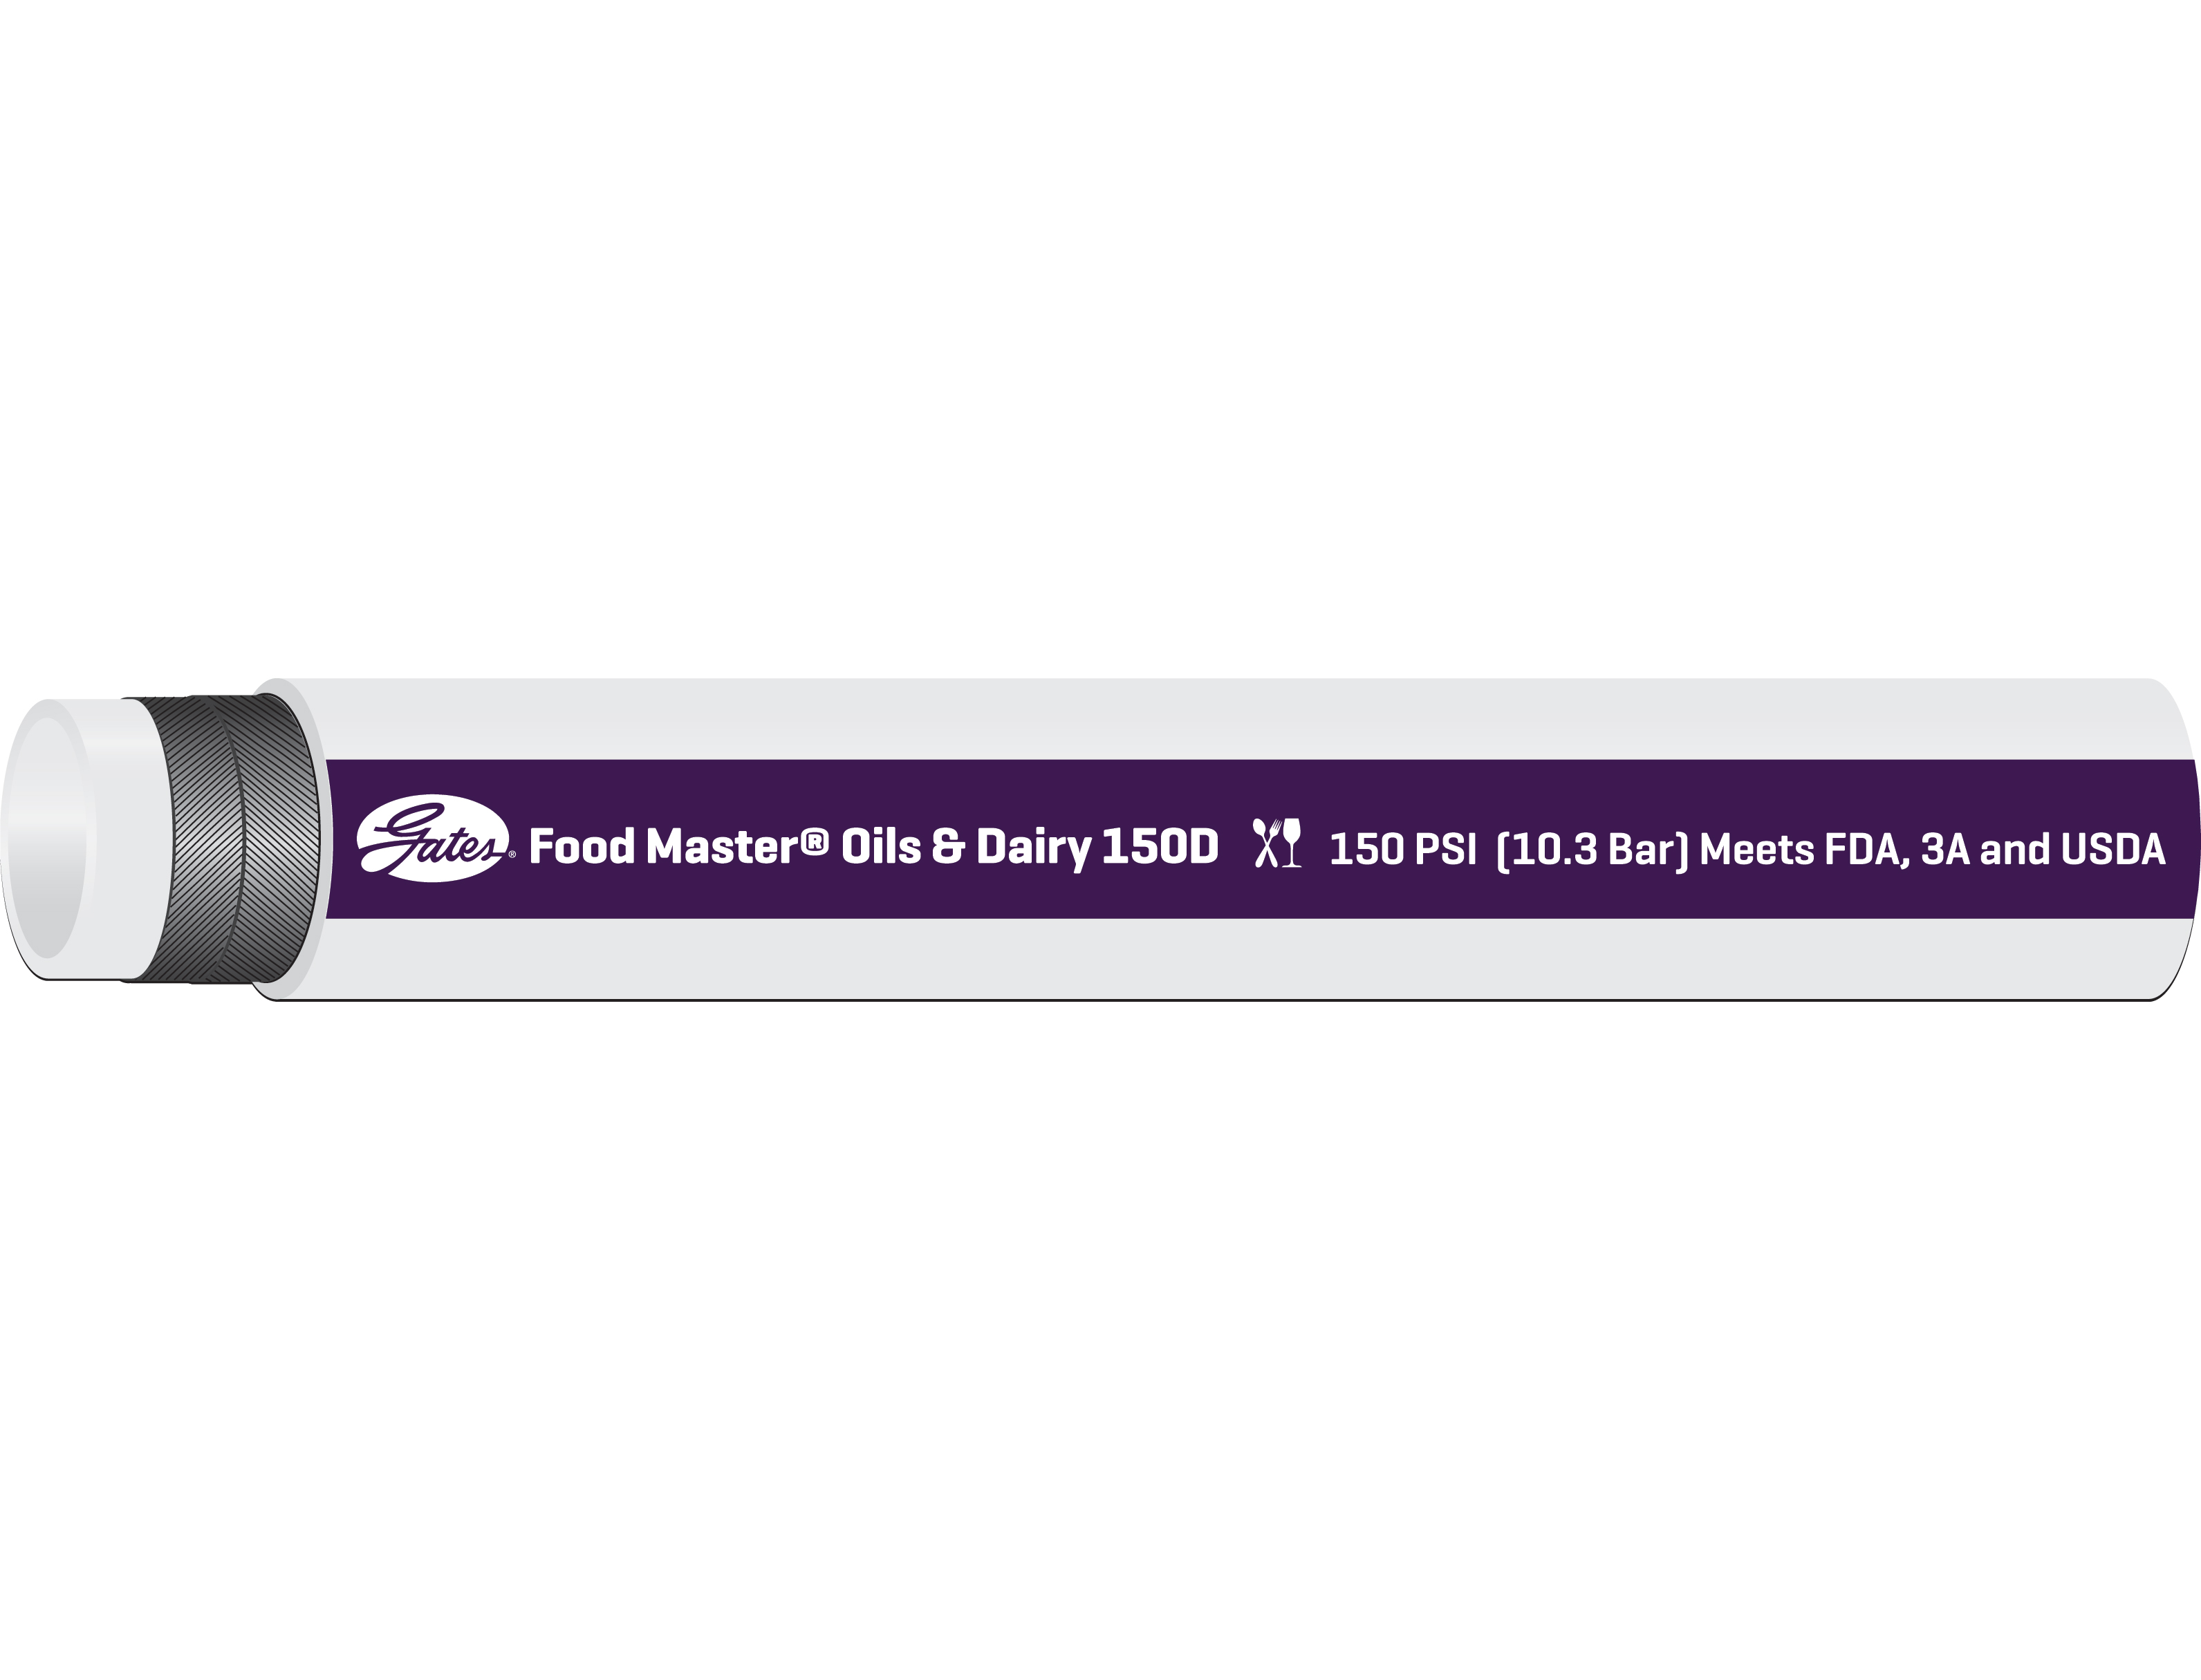 Food Master Oils & Dairy 150D Transfer Hose